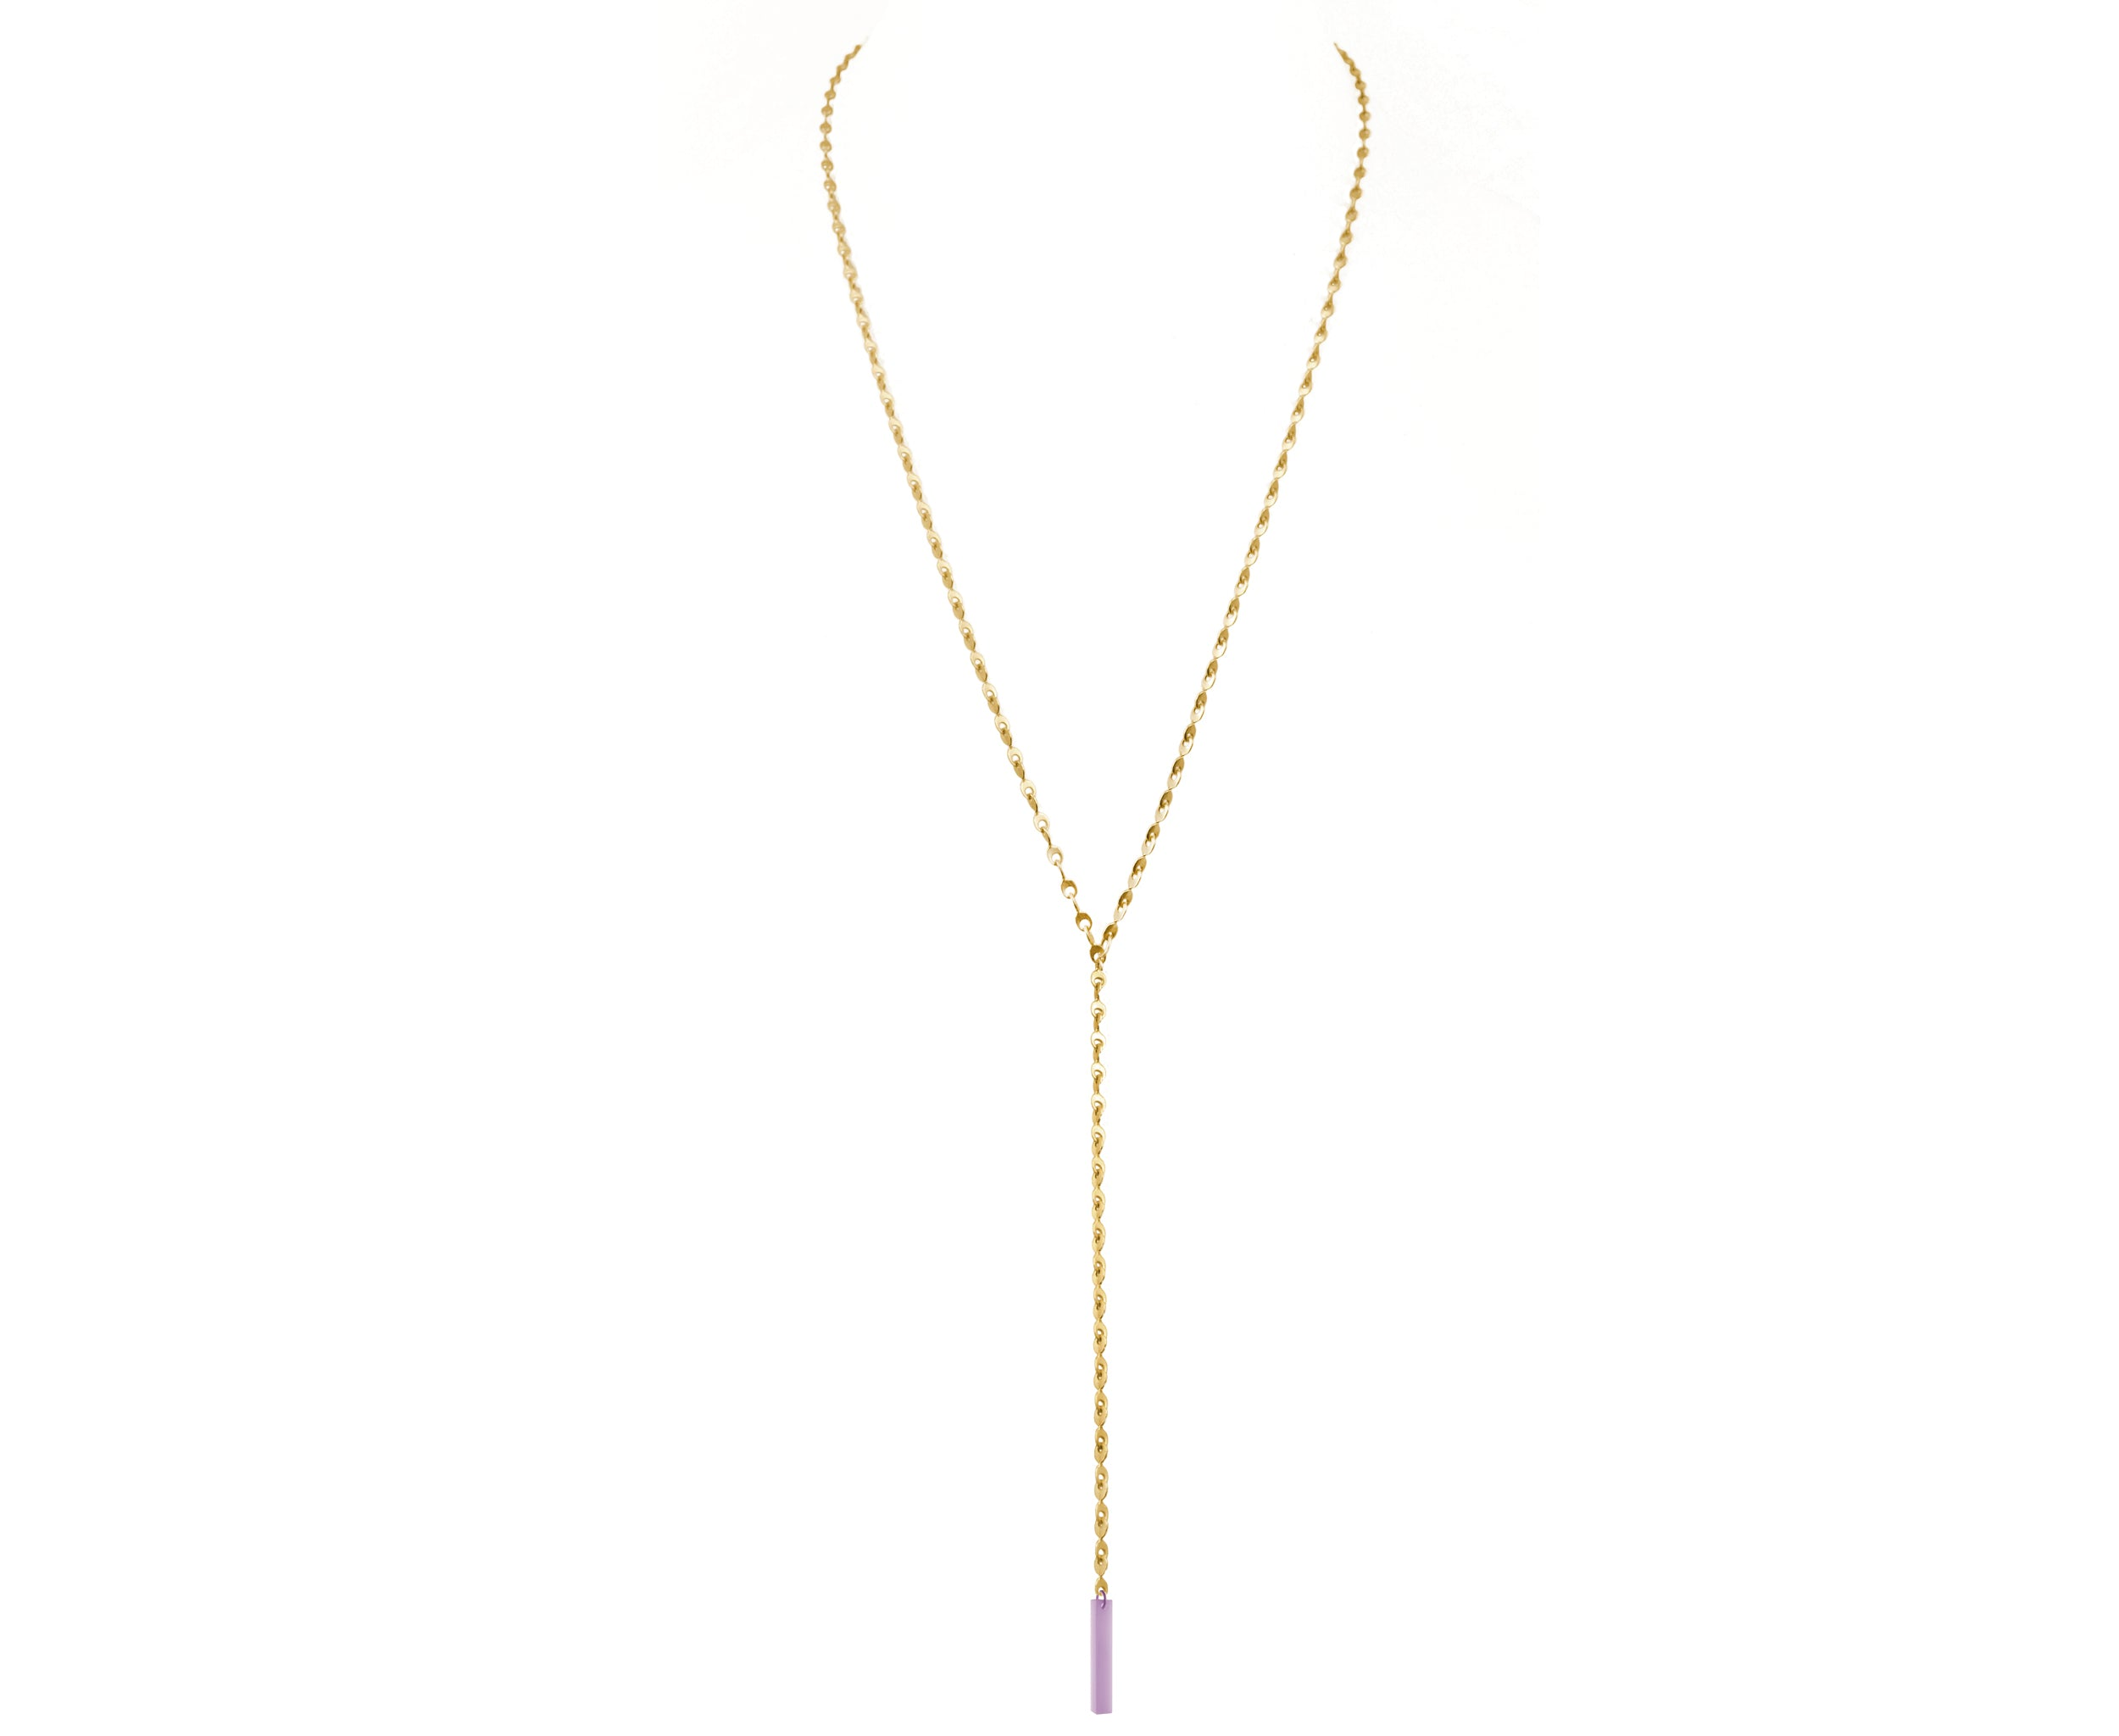 Glass & Gold Eyelet Chain Lariat Necklace